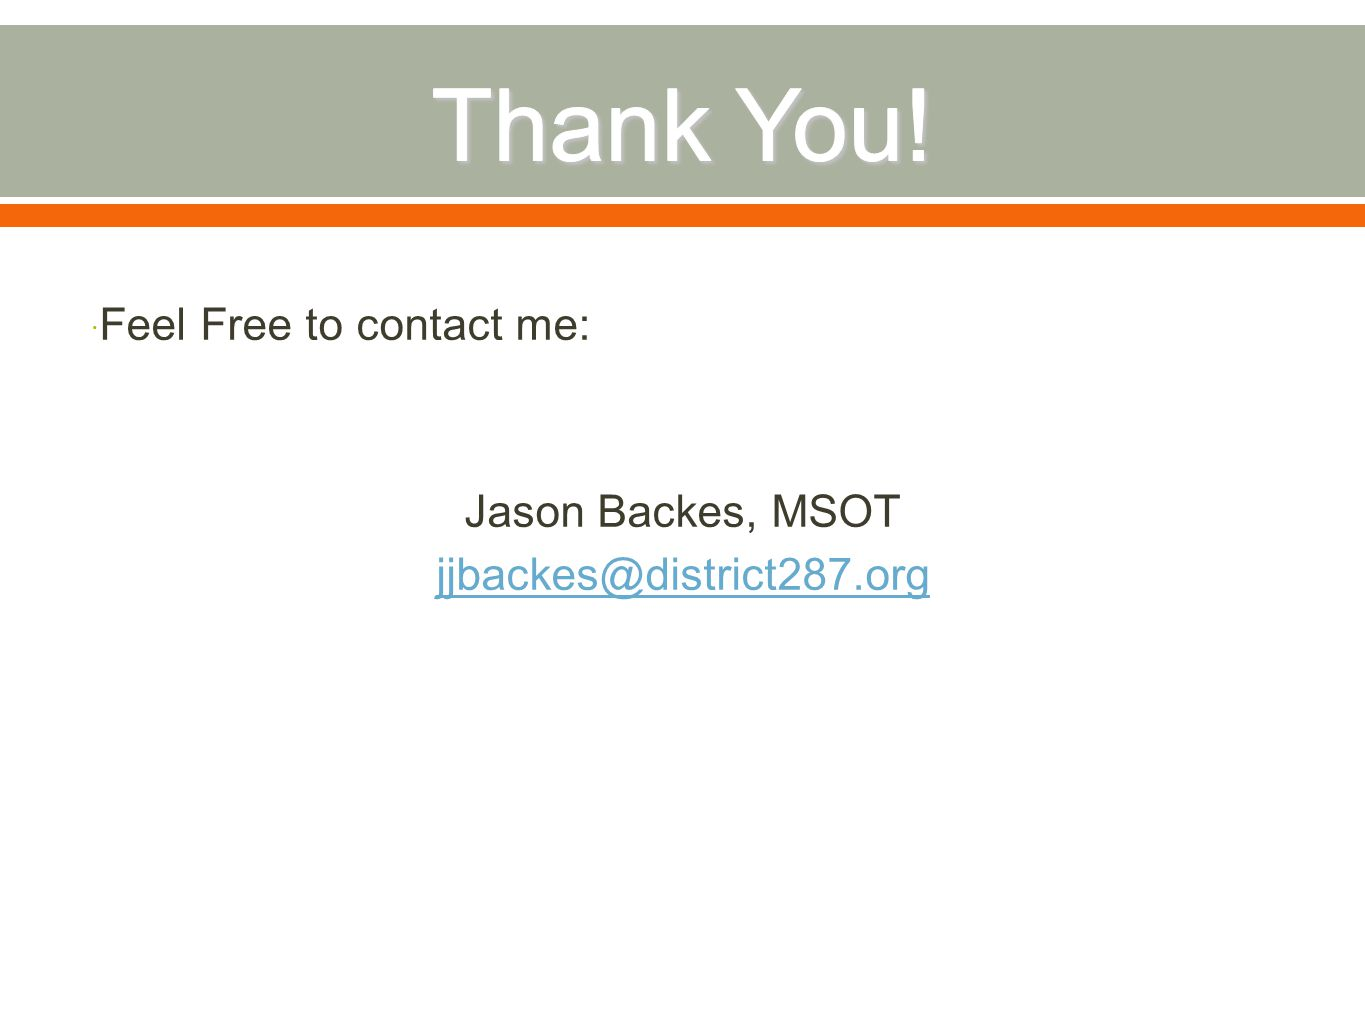  Feel Free to contact me: Jason Backes, MSOT jjbackes@district287.org